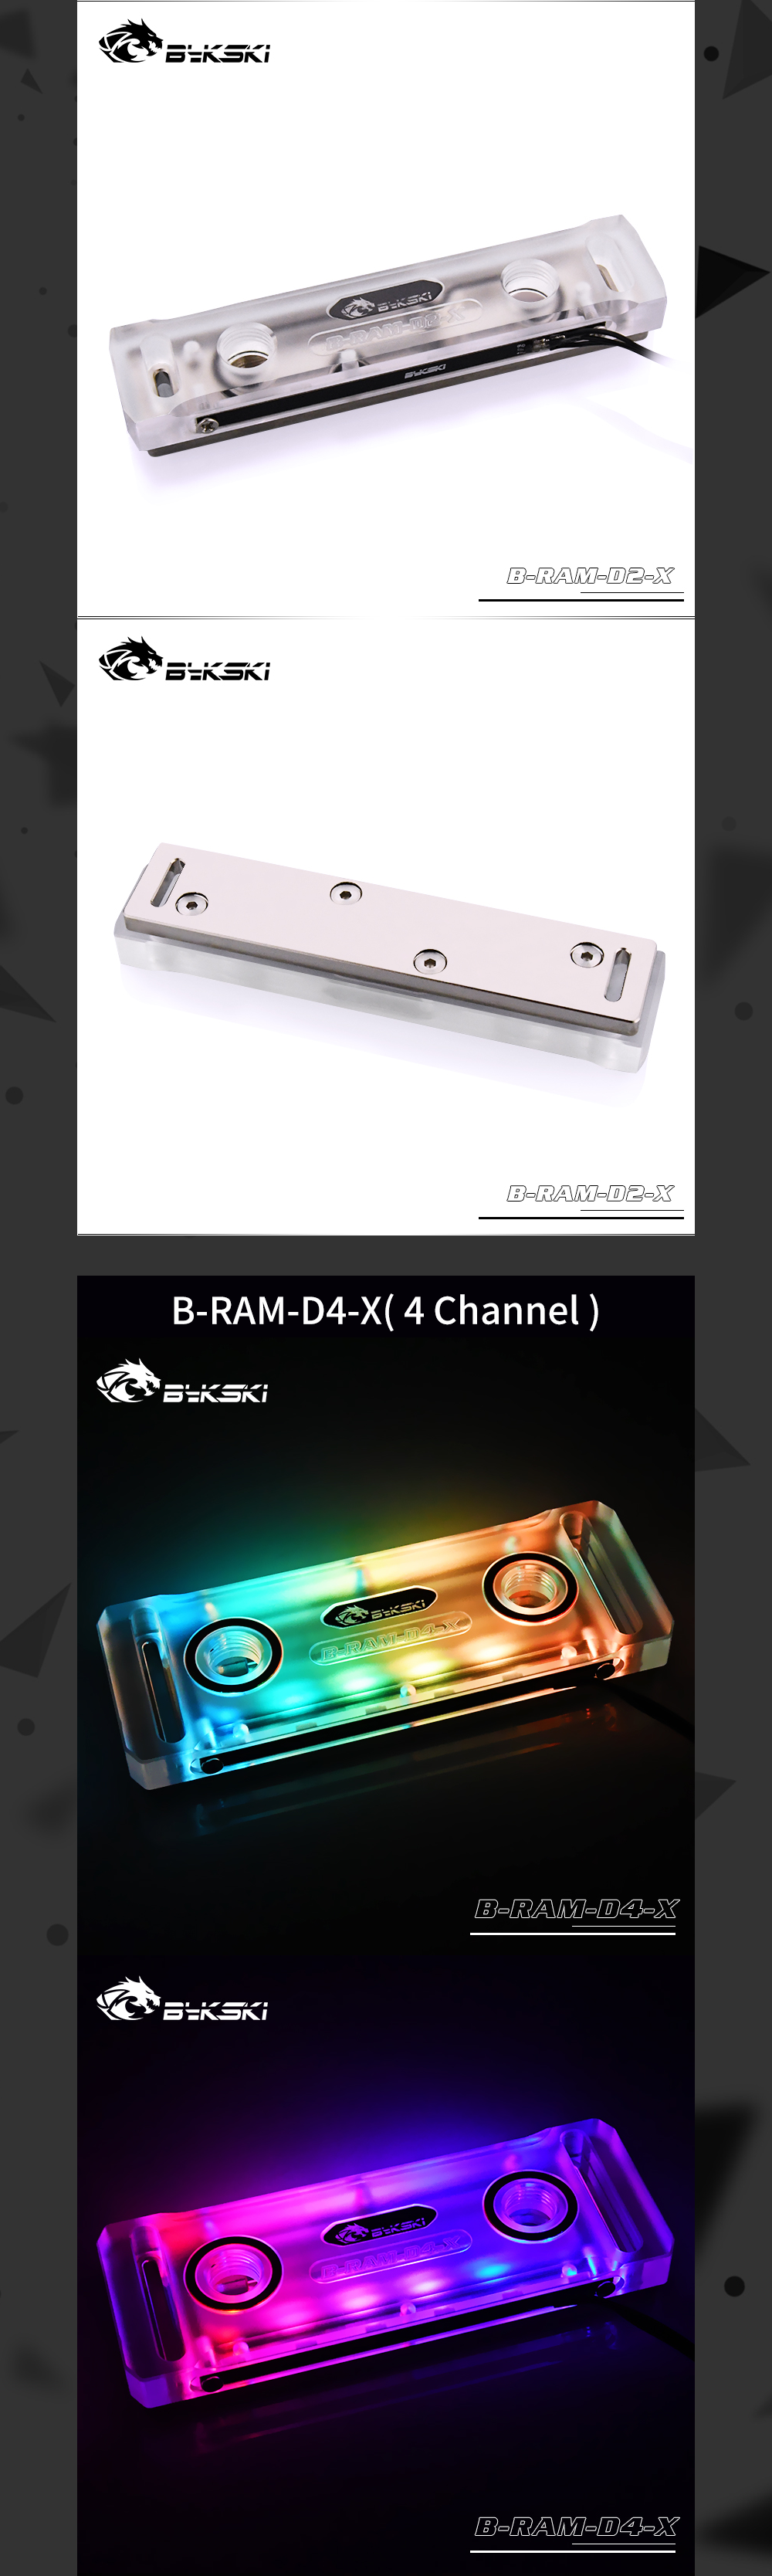 Bykski B-RAM-D2-X / B-RAM-D4-X RBW RGB Ram Water Block Acrylic Cover Support Two Ram Channel and Four Memory Channel